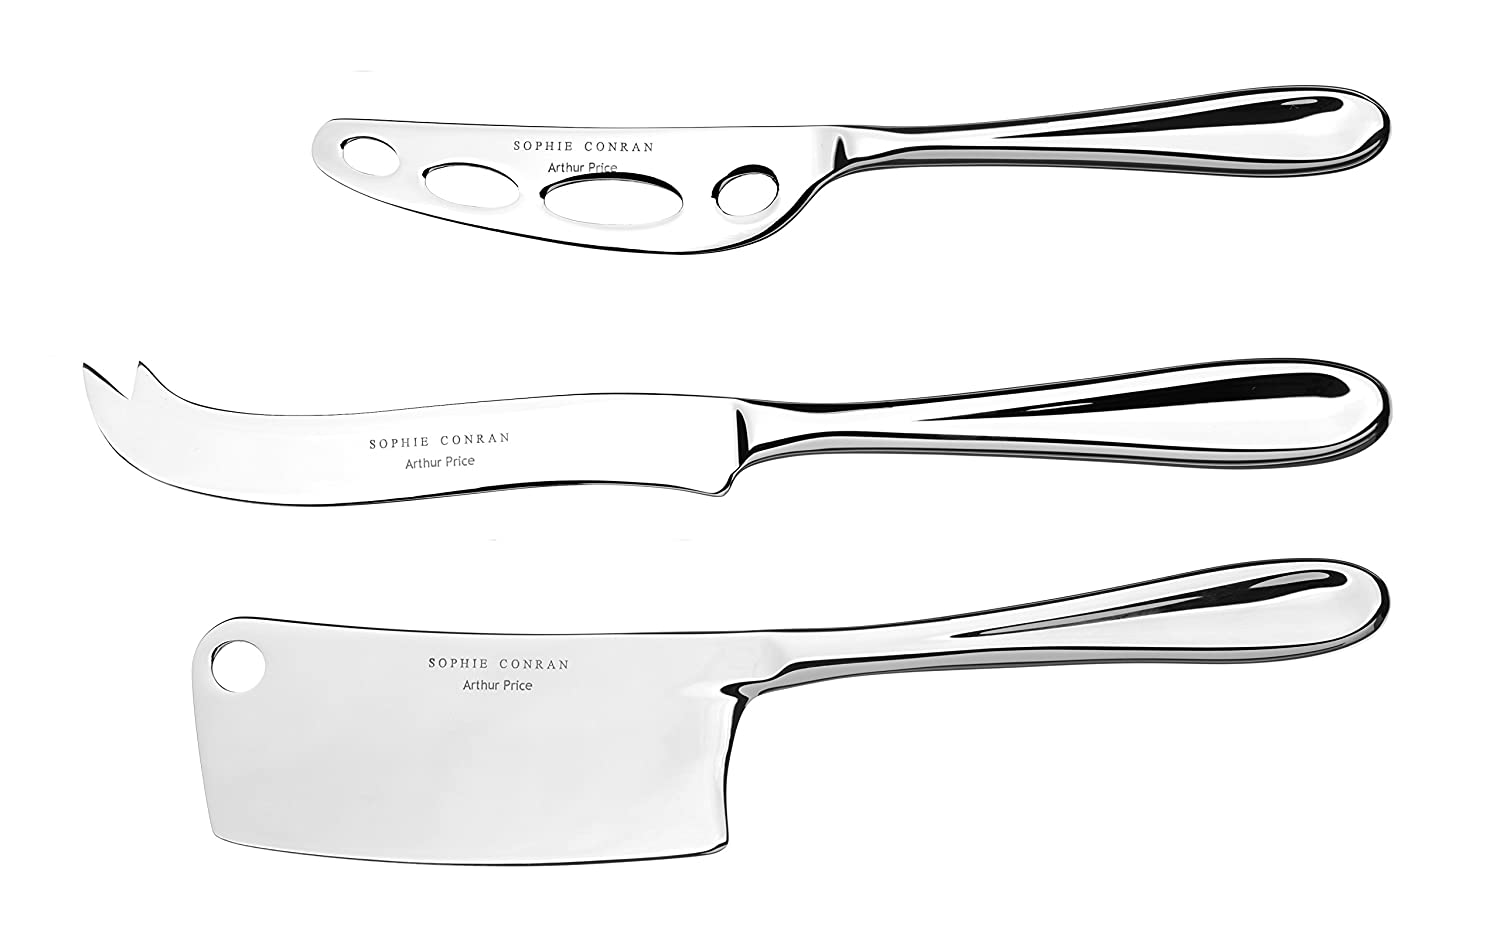 Sophie Conran 3-Piece Rivelin Cheese Knives Set Arthur Price ZSCR0733